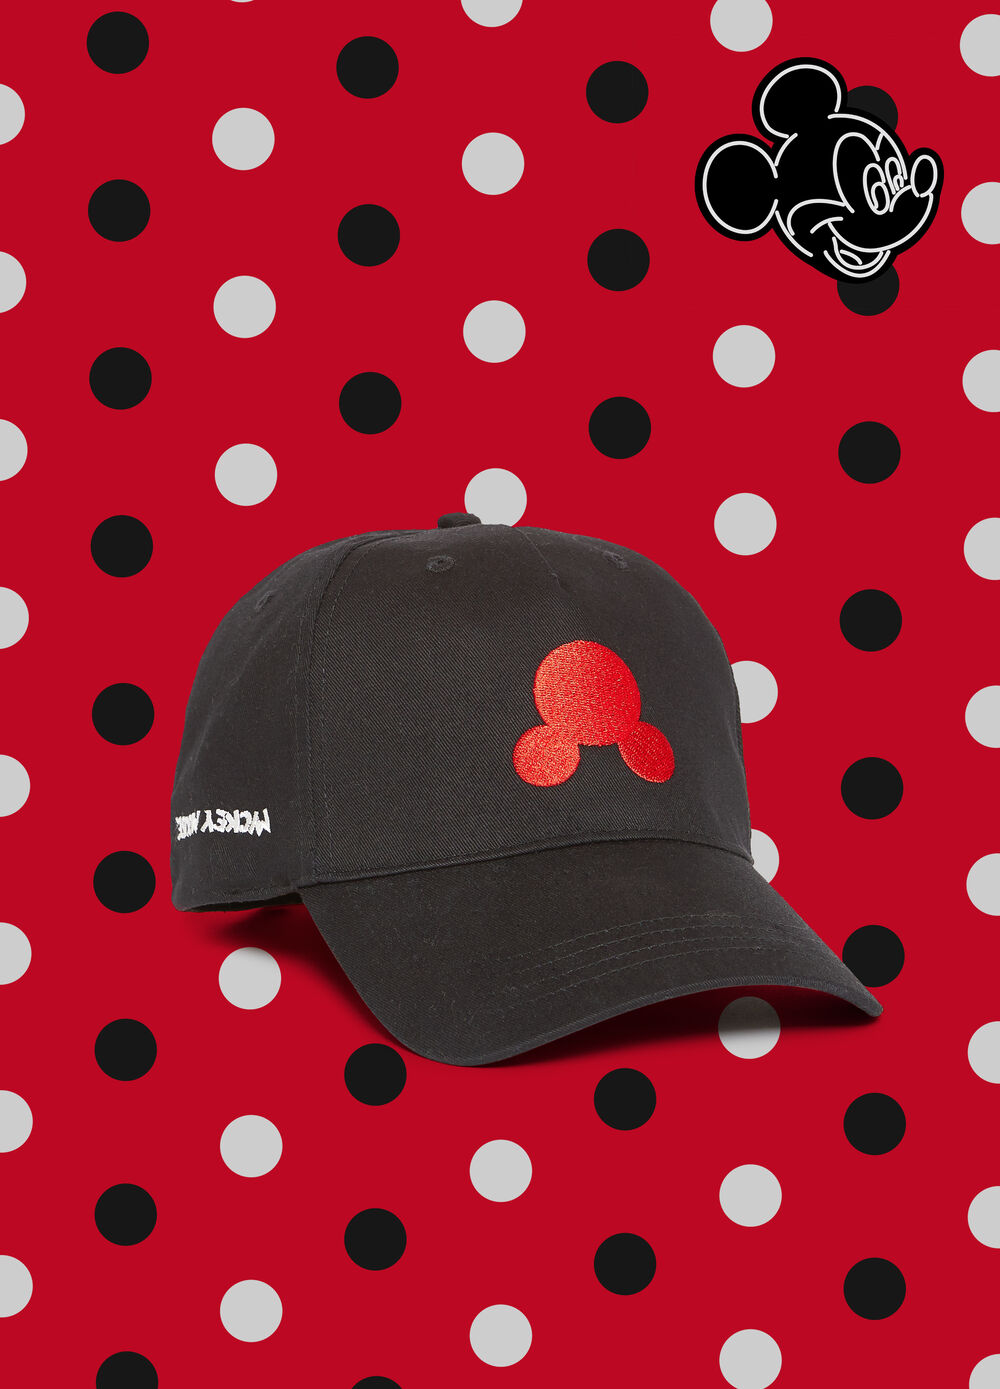 Baseball cap with Mickey Mouse embroidery